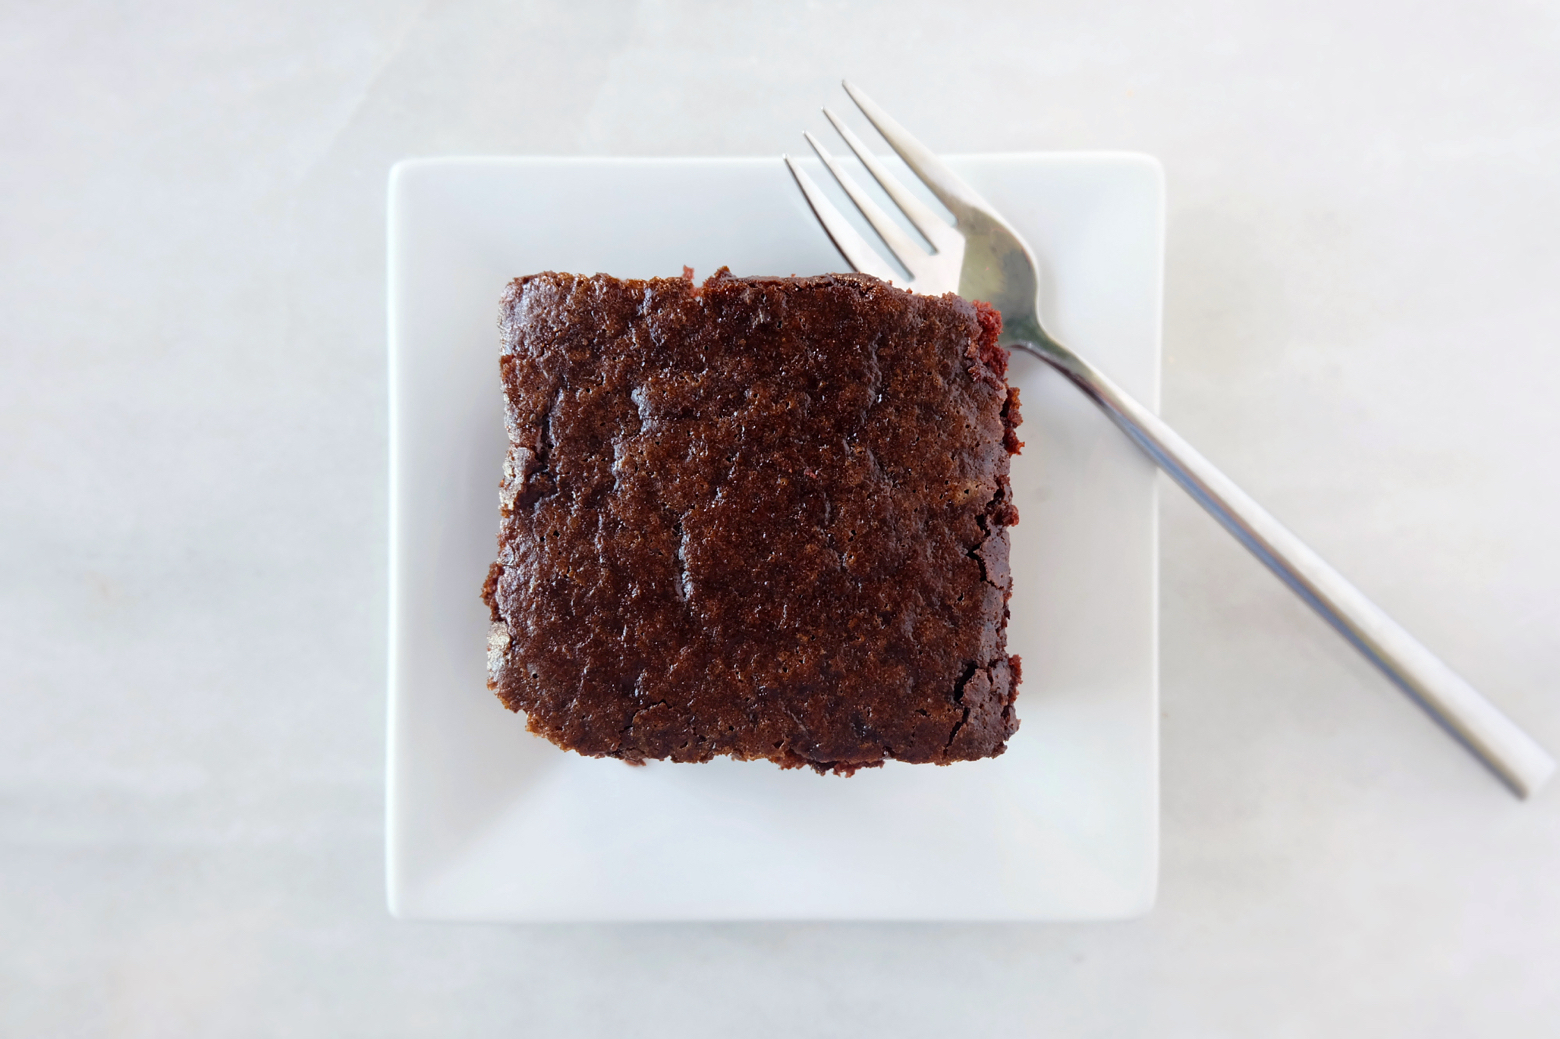 slice of chocolate cake viewed from above